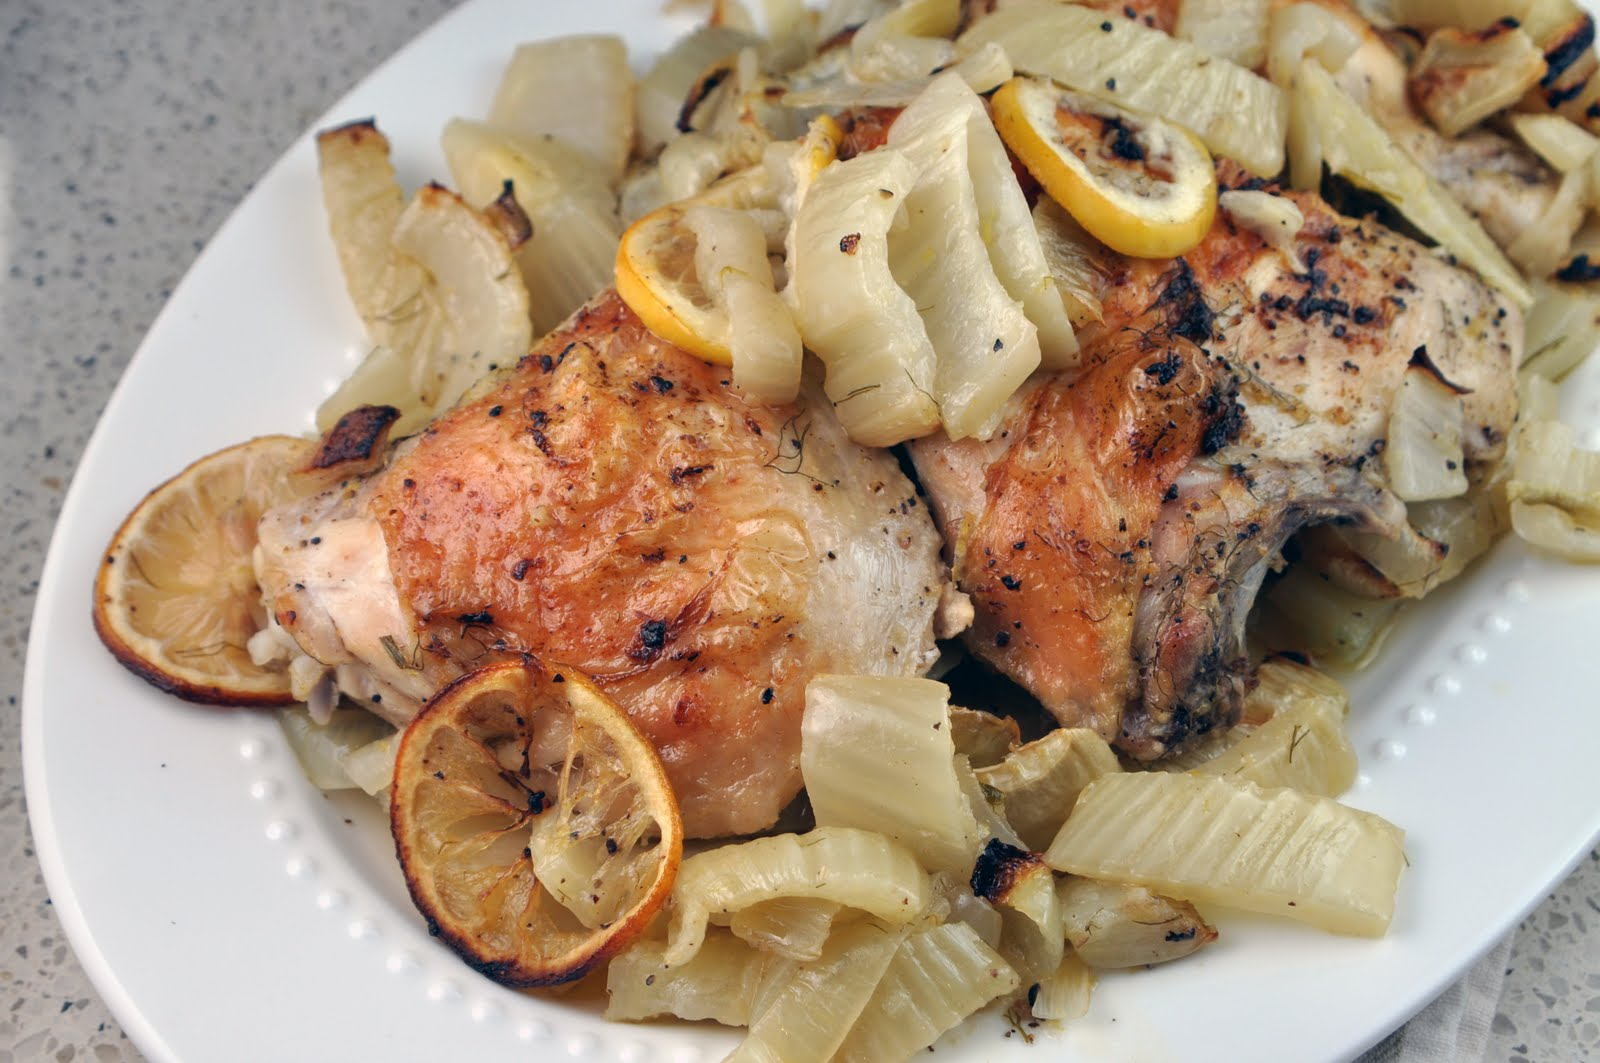 ... lemon slow roasted garlic and lemon chicken meyer lemon roasted